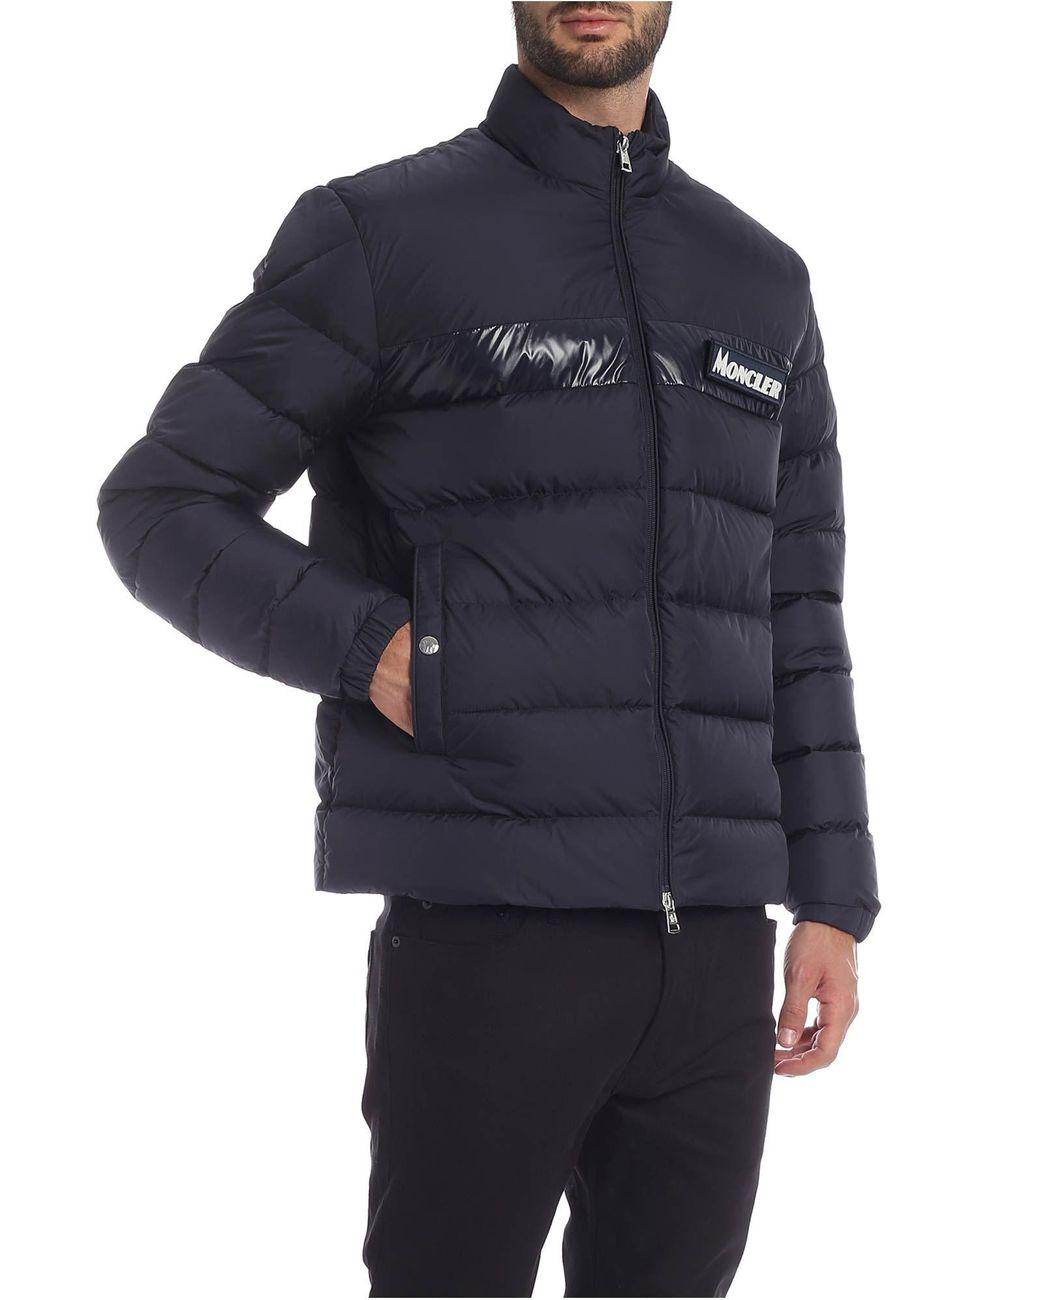 083a1b6a3 Moncler Servieres Down Jacket In Dark Blue in Blue for Men - Lyst